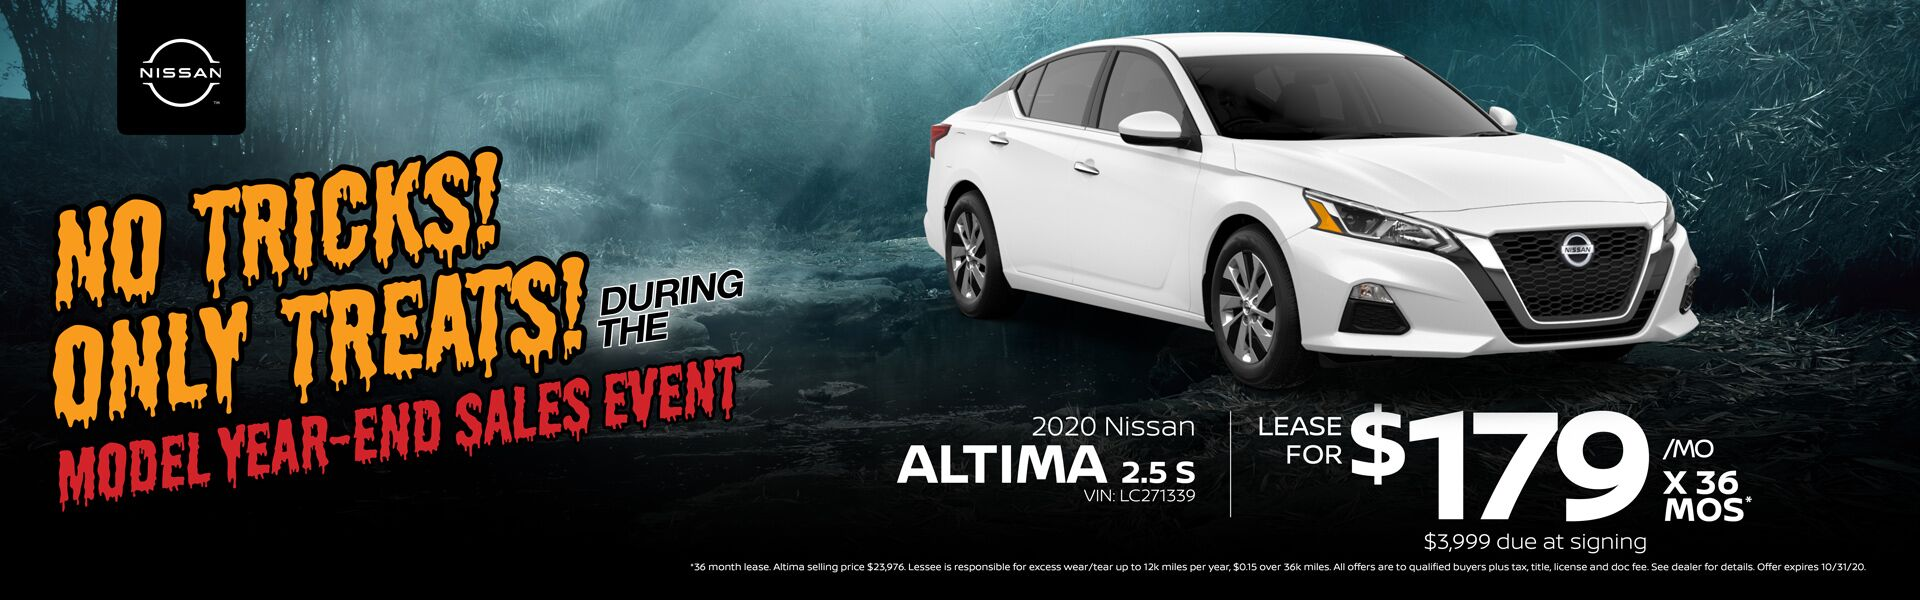 2020 Altima Lease for $179/mo. for 36 mos.